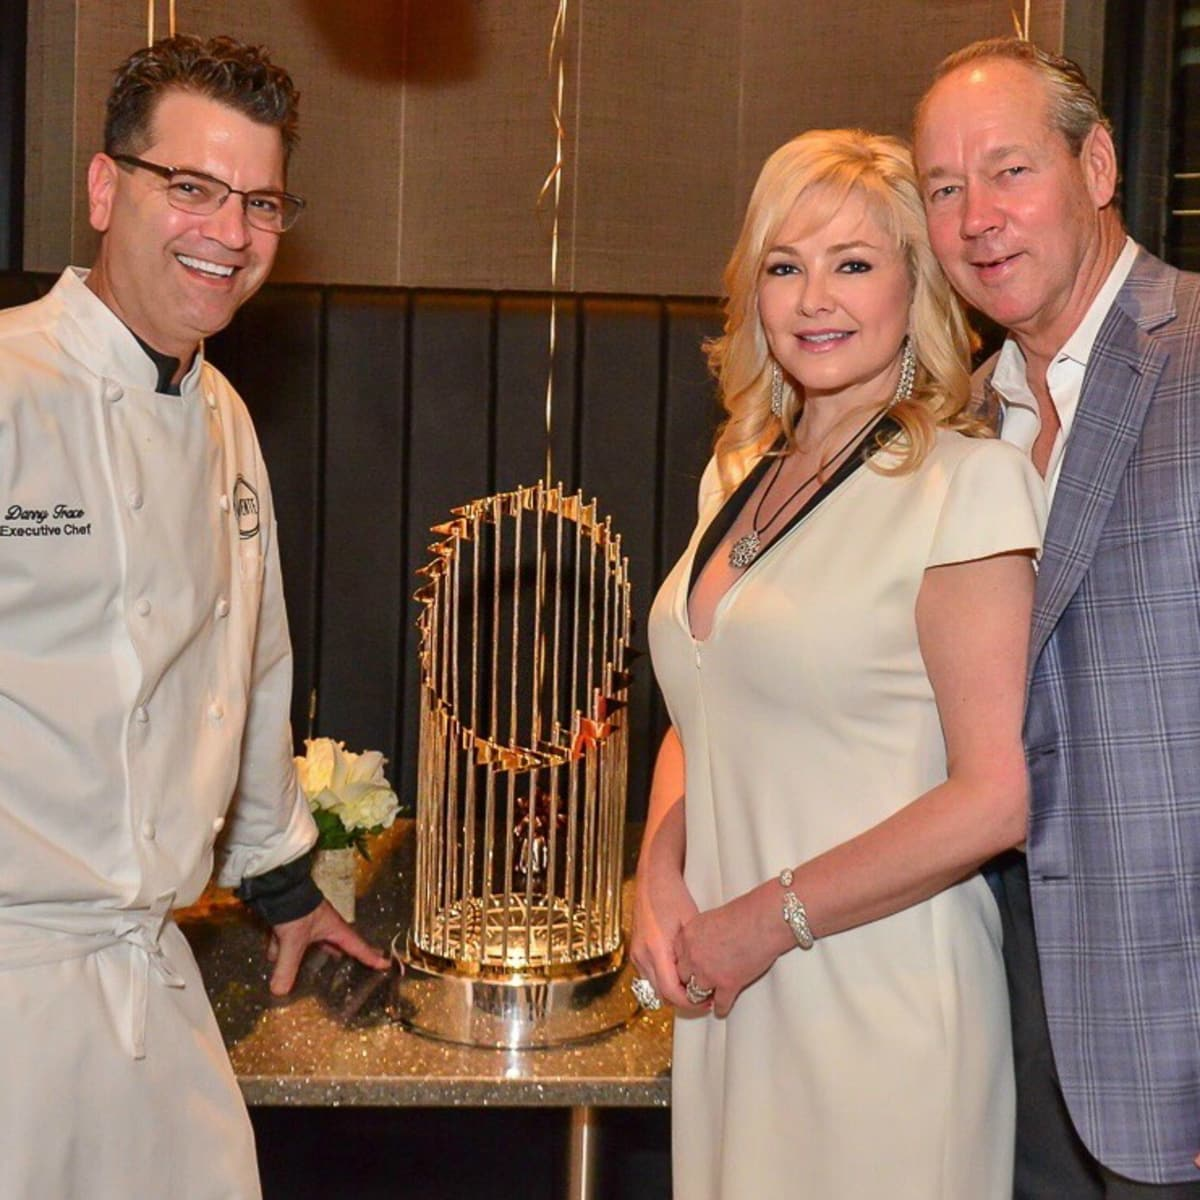 Houston - Jim Crane - Houston Astros - World Series trophy - Potente